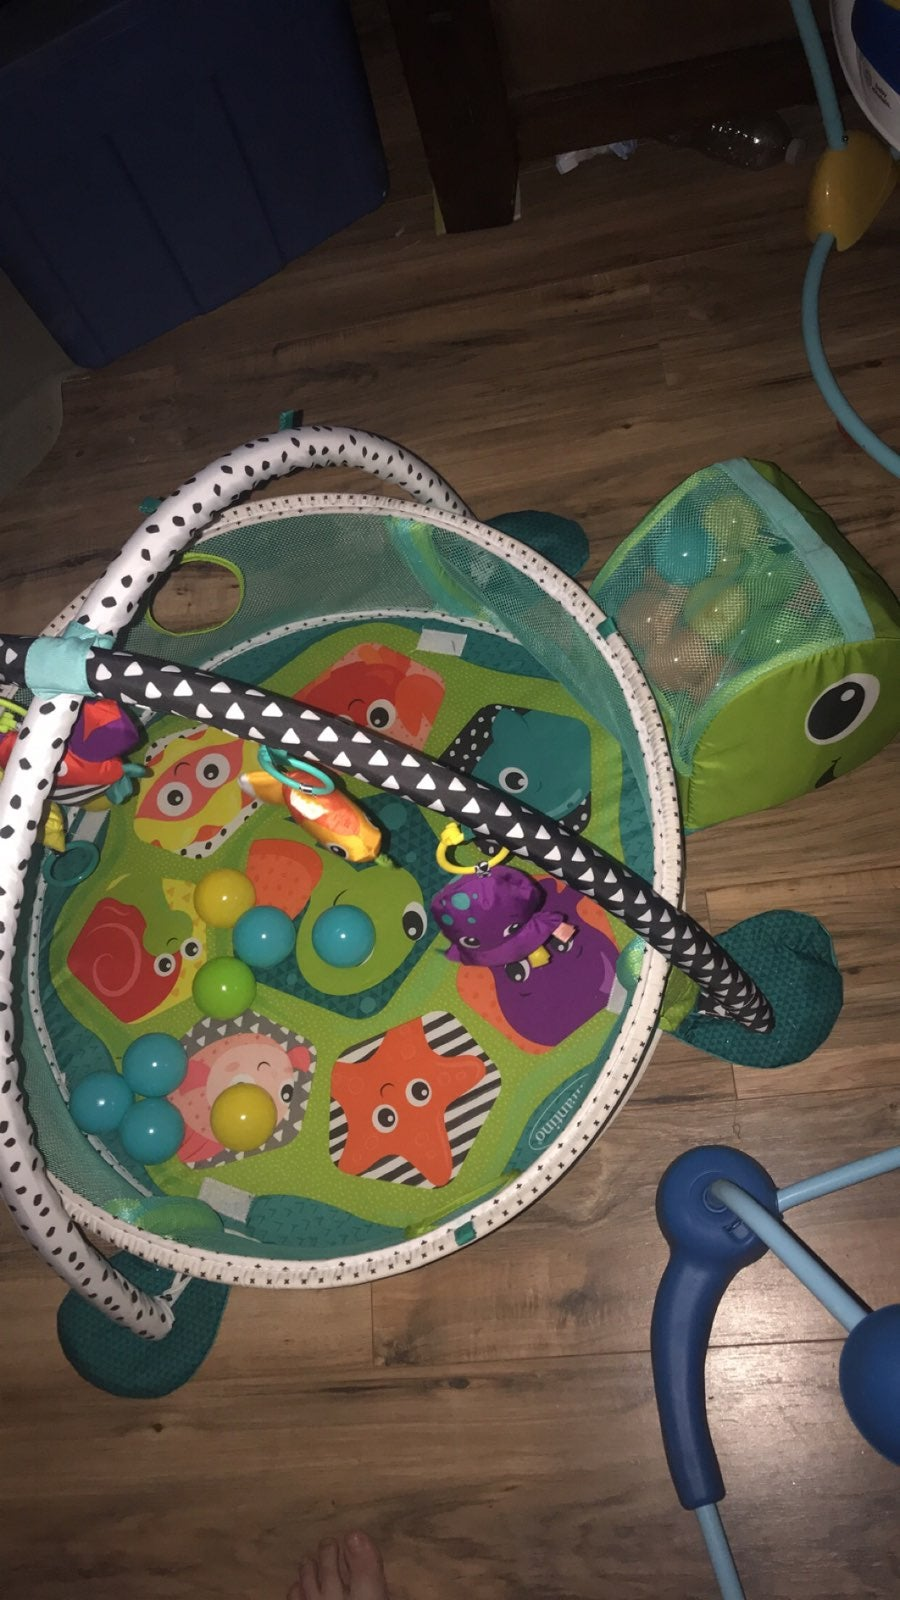 Turtle Baby Ballpit